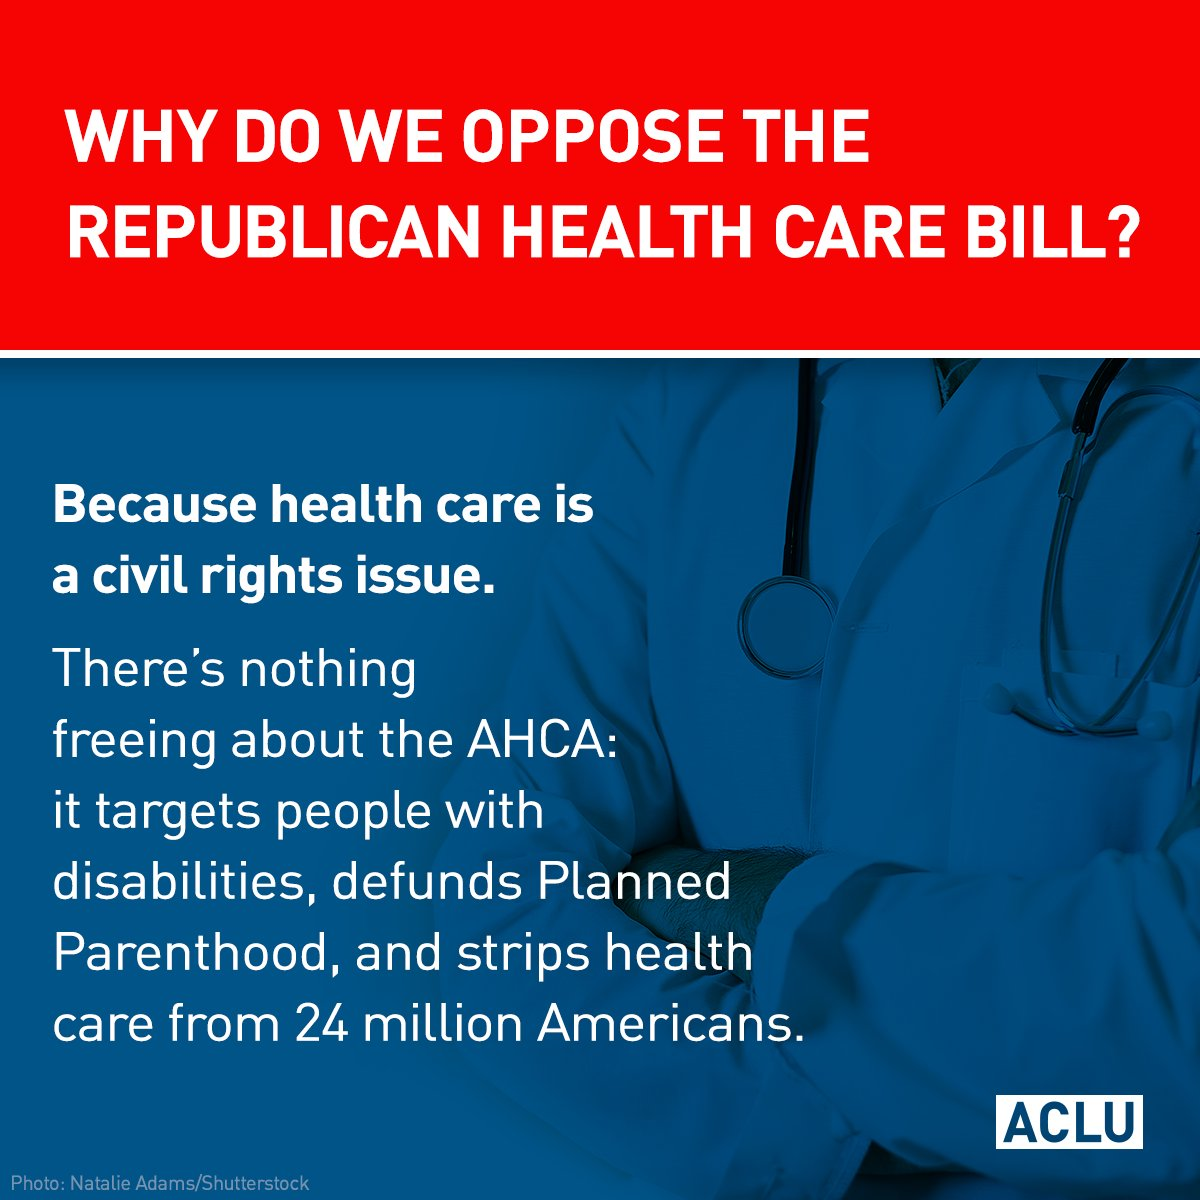 The #AHCA vote was delayed. Take action: call your members of Congress...